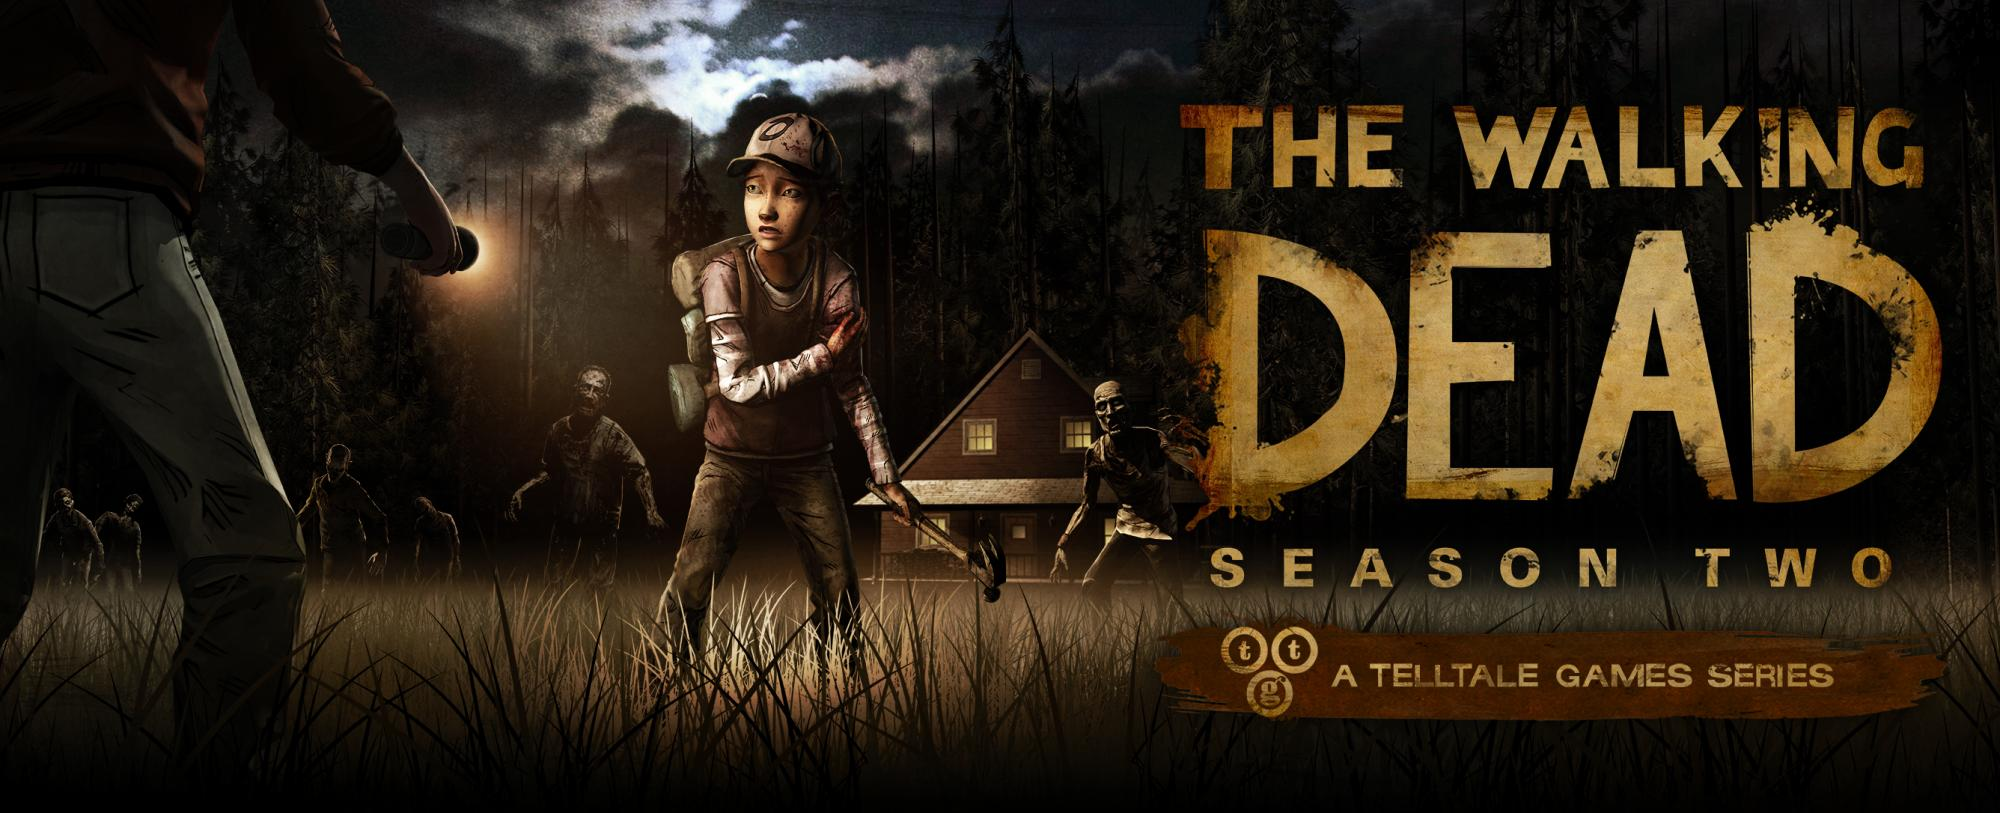 The Walking Dead Season 2 review I see too many dead people 2000x813